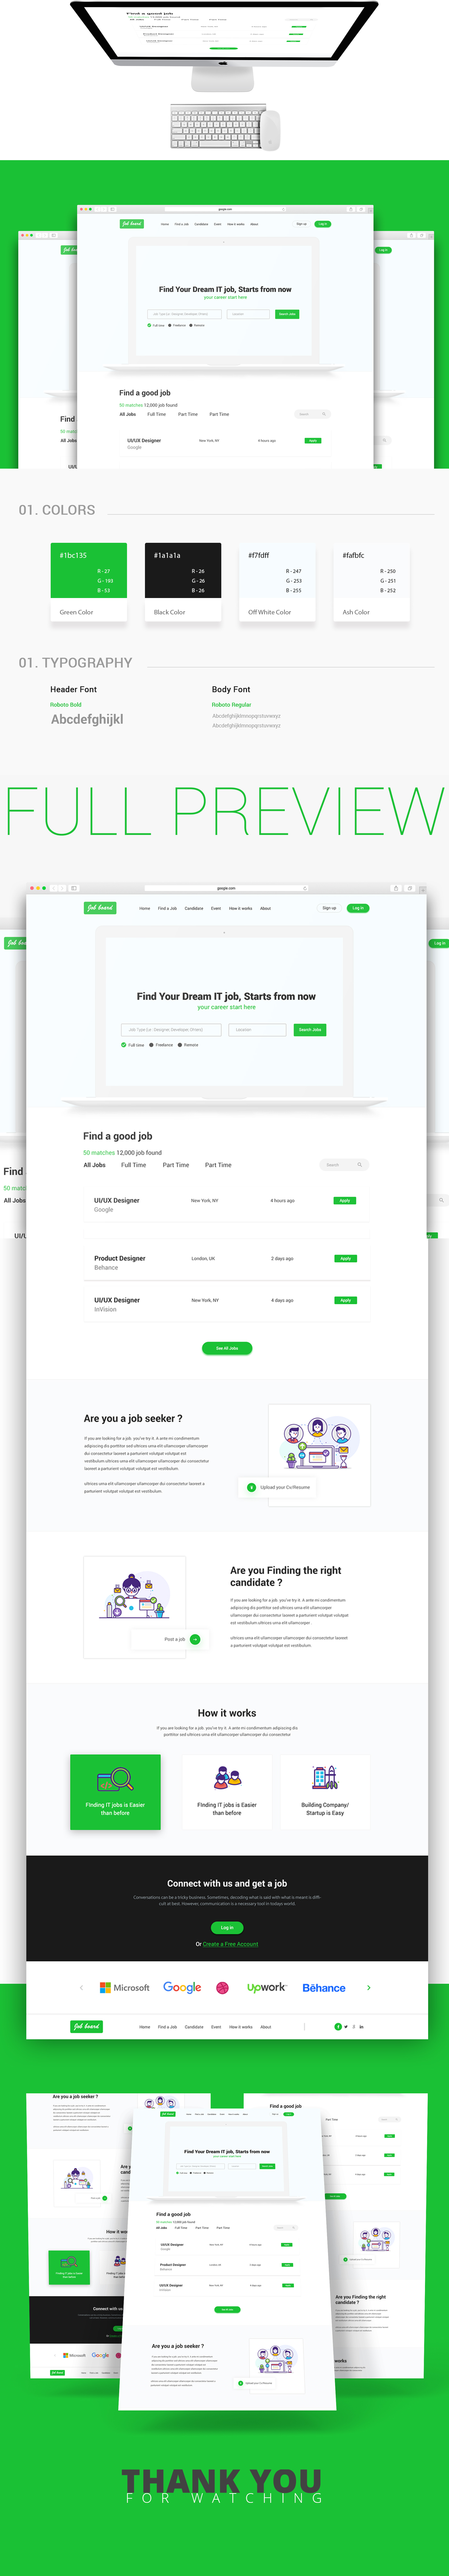 job board web interface design concept on behance